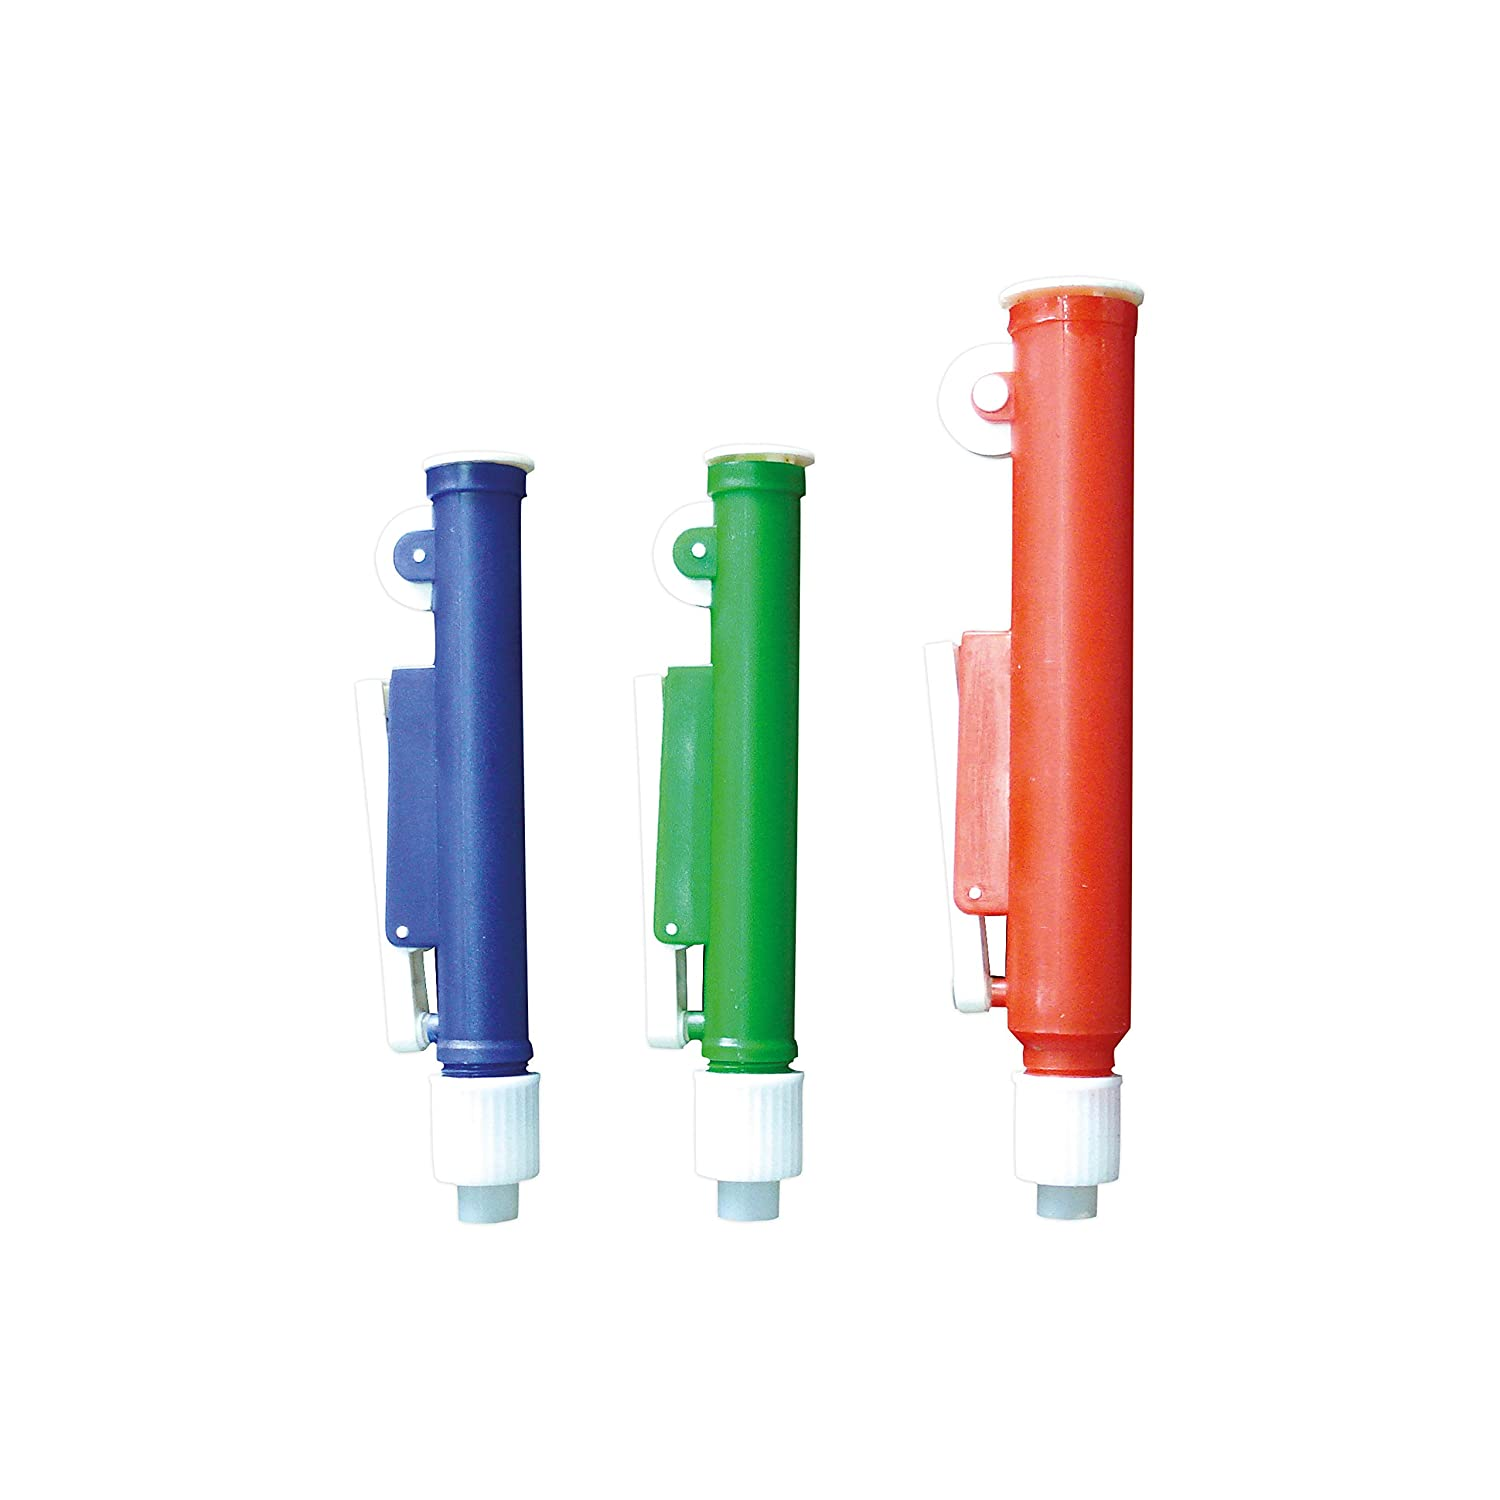 Easy EAS8-010-001 Aspirador para Pipetas hasta 10 ml, Verde ...